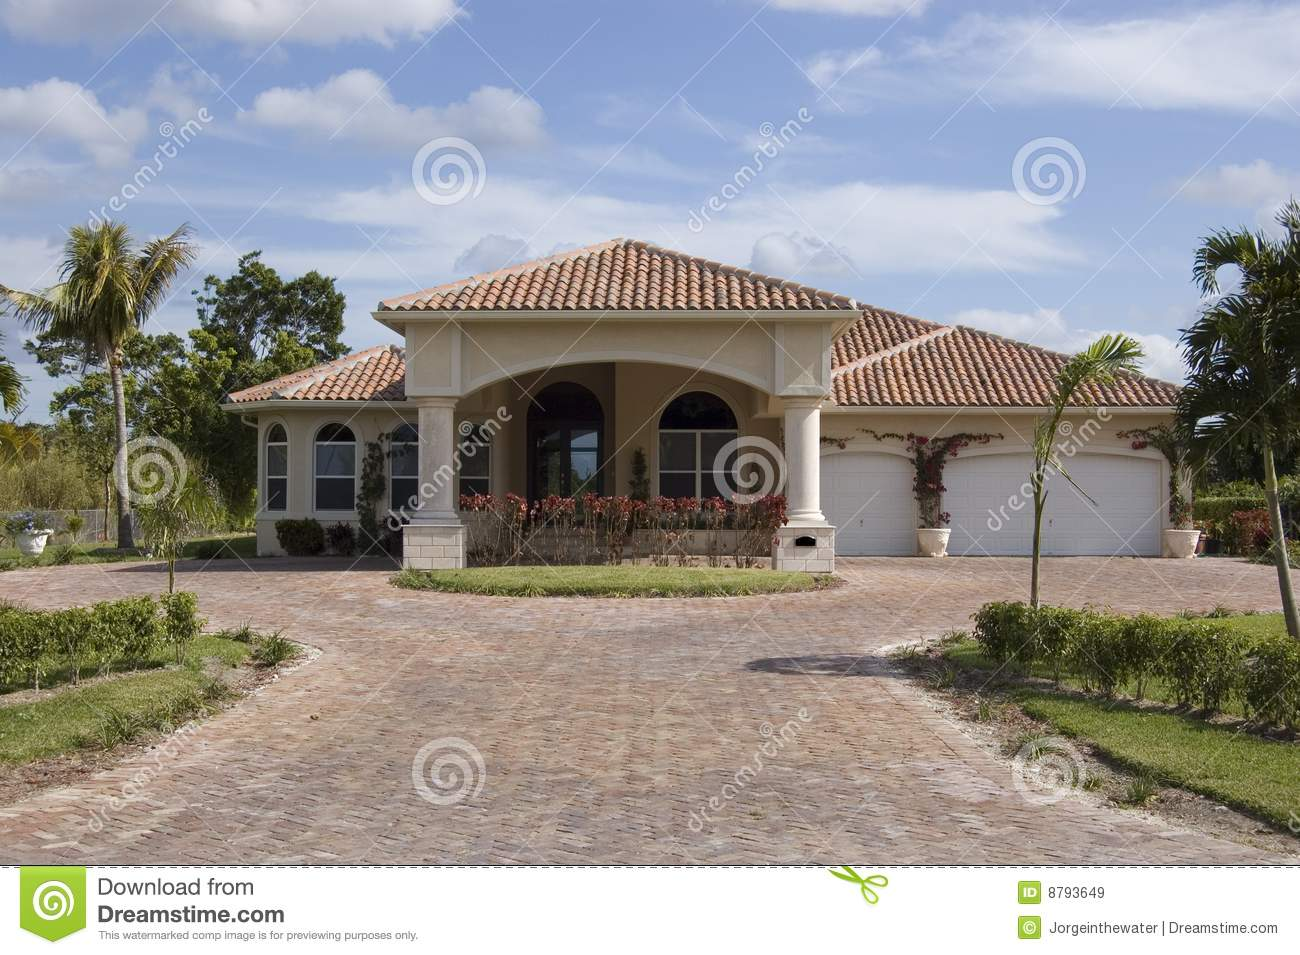 Courtyard House Plans further Royalty Free Stock Images Mediterranean Style Home Image8793649 further Miami Beach Fl Usa additionally Portfolio additionally Casita Veranda Pool Optional. on mediterranean homes in florida